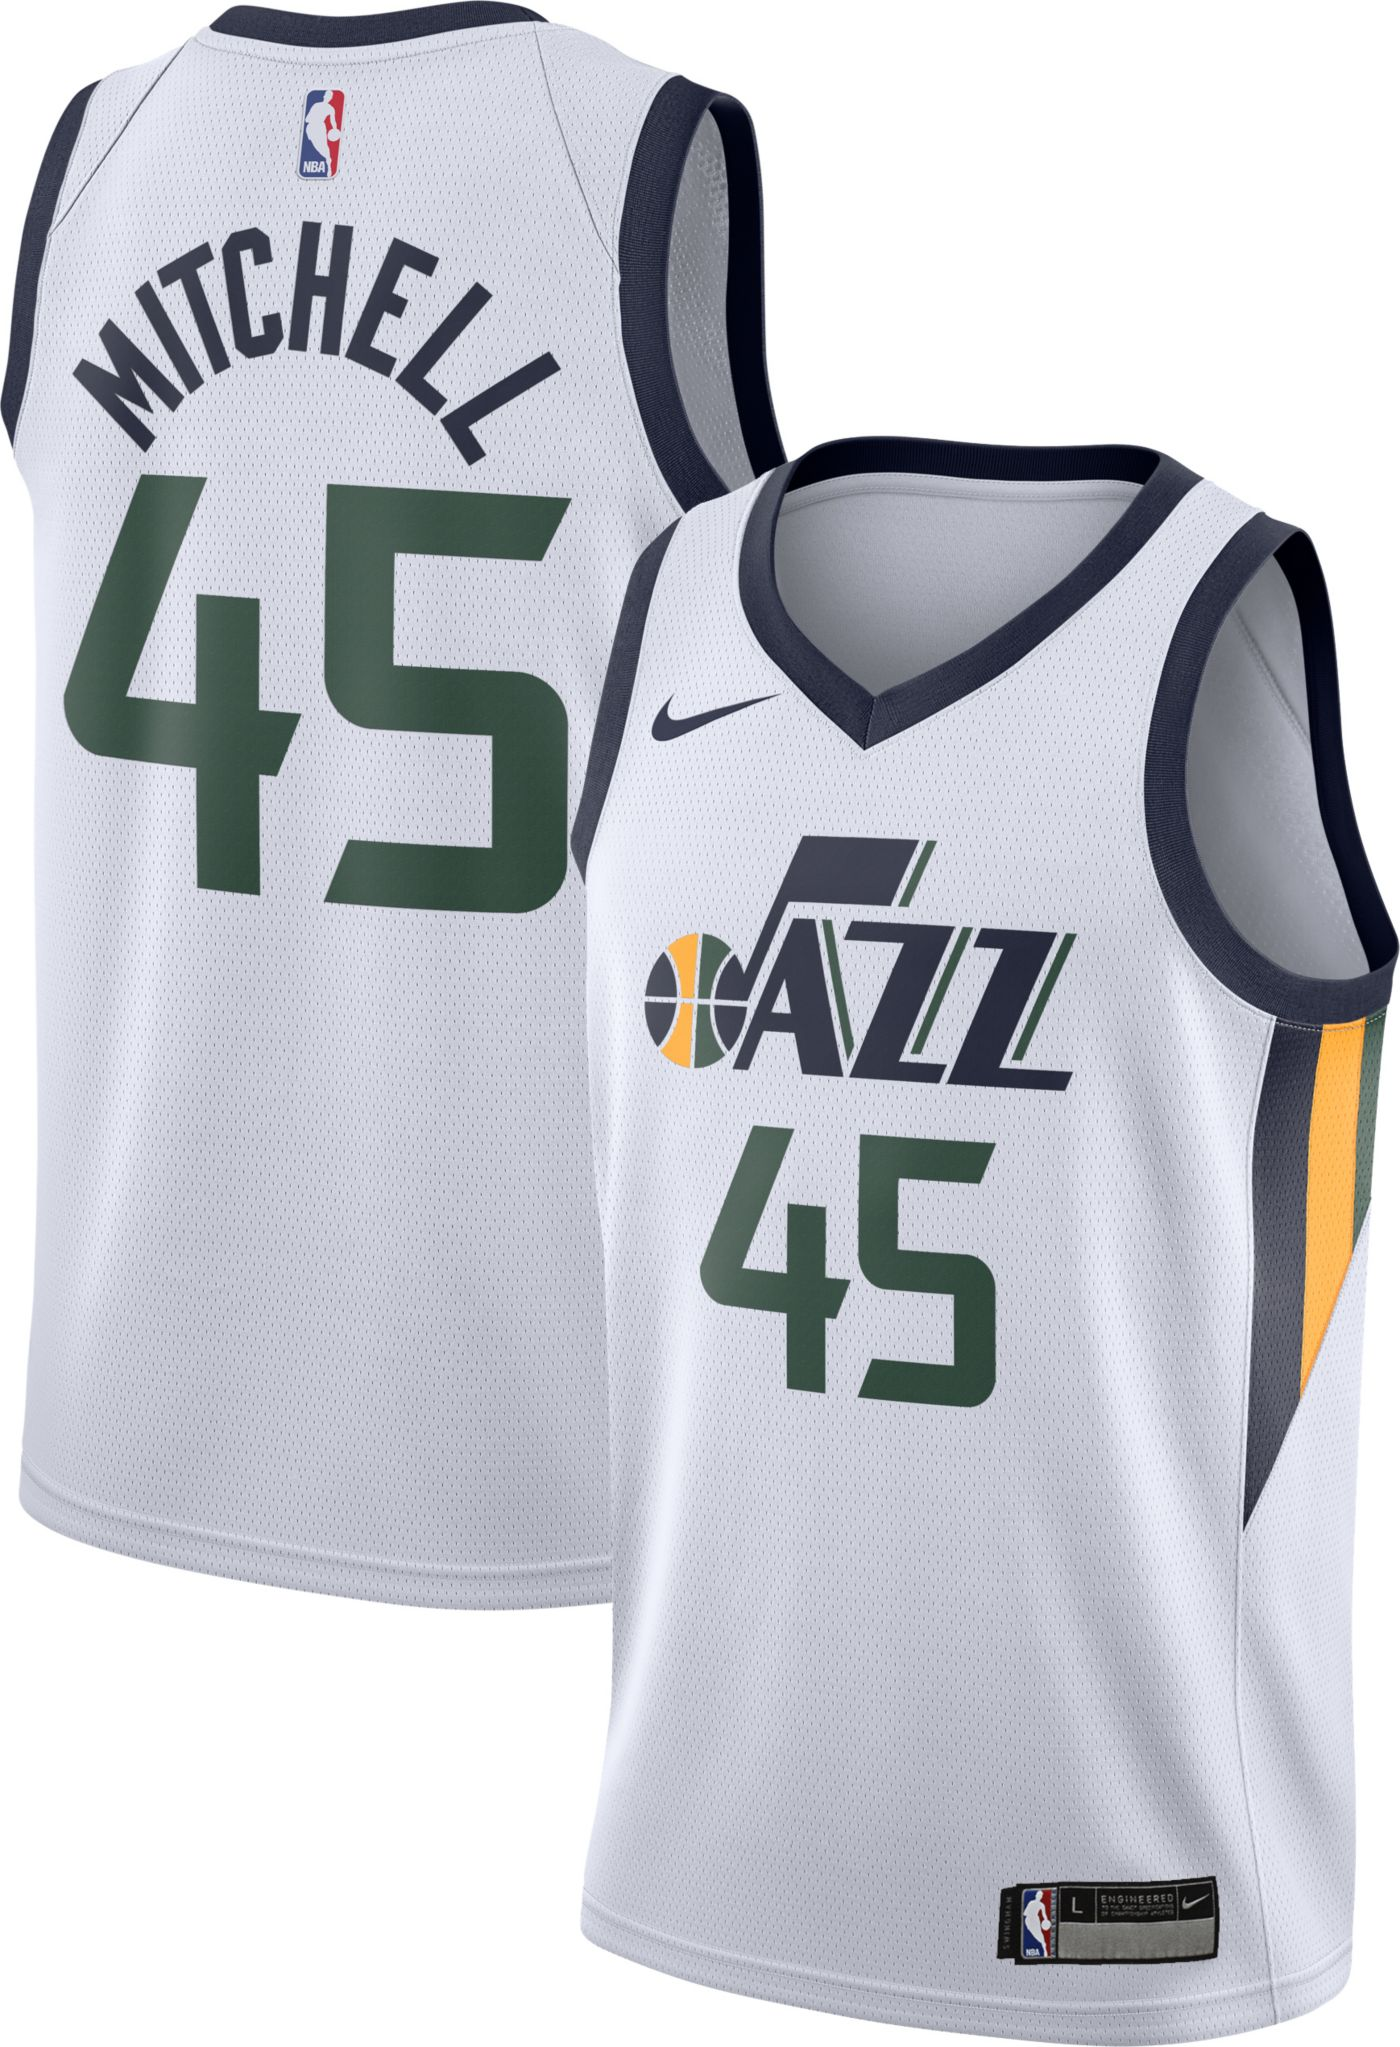 Nike Youth Utah Jazz Donovan Mitchell #45 White Dri-FIT Swingman Jersey